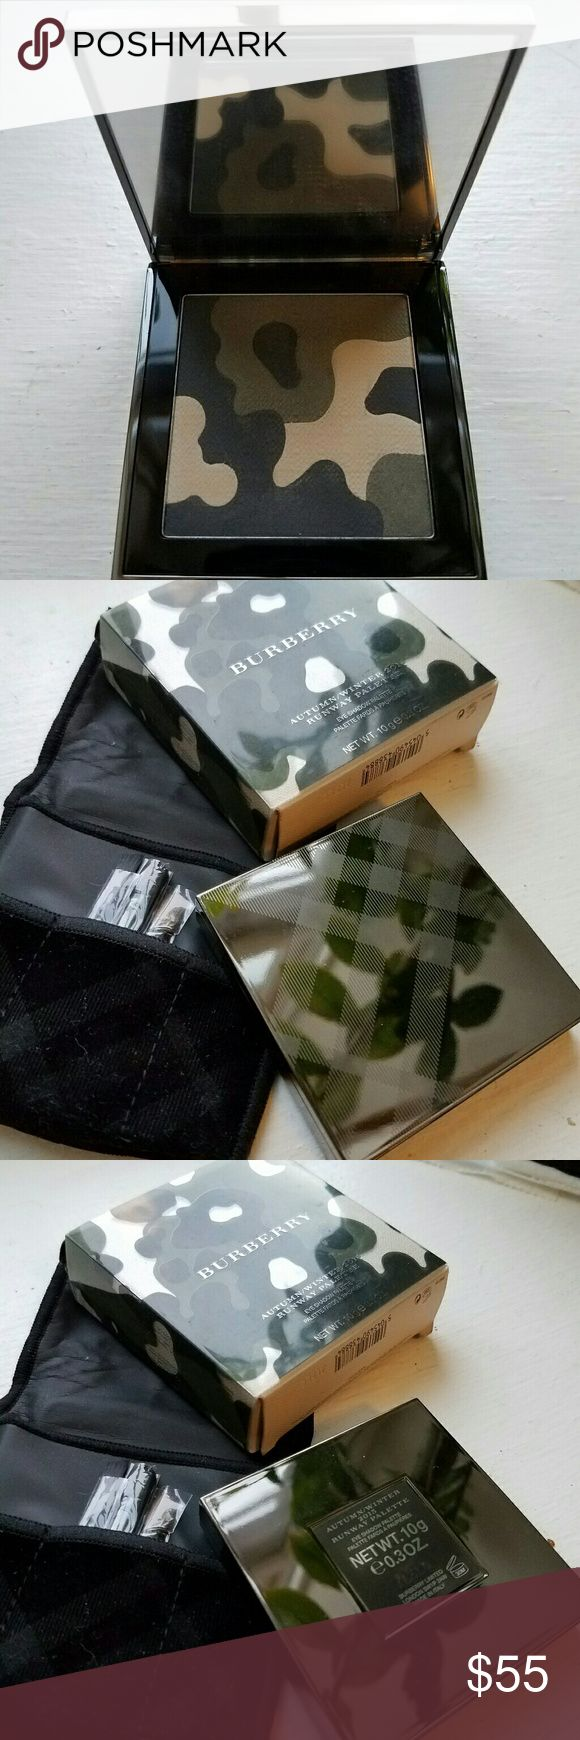 BURBERRY 2015 Camo eyeshadow palette BURBERRY Autumn/Winter 2015 Camo eyeshadow palette (LE). Used once. Comes with pouch, brushes and box. Burberry Makeup Eyeshadow